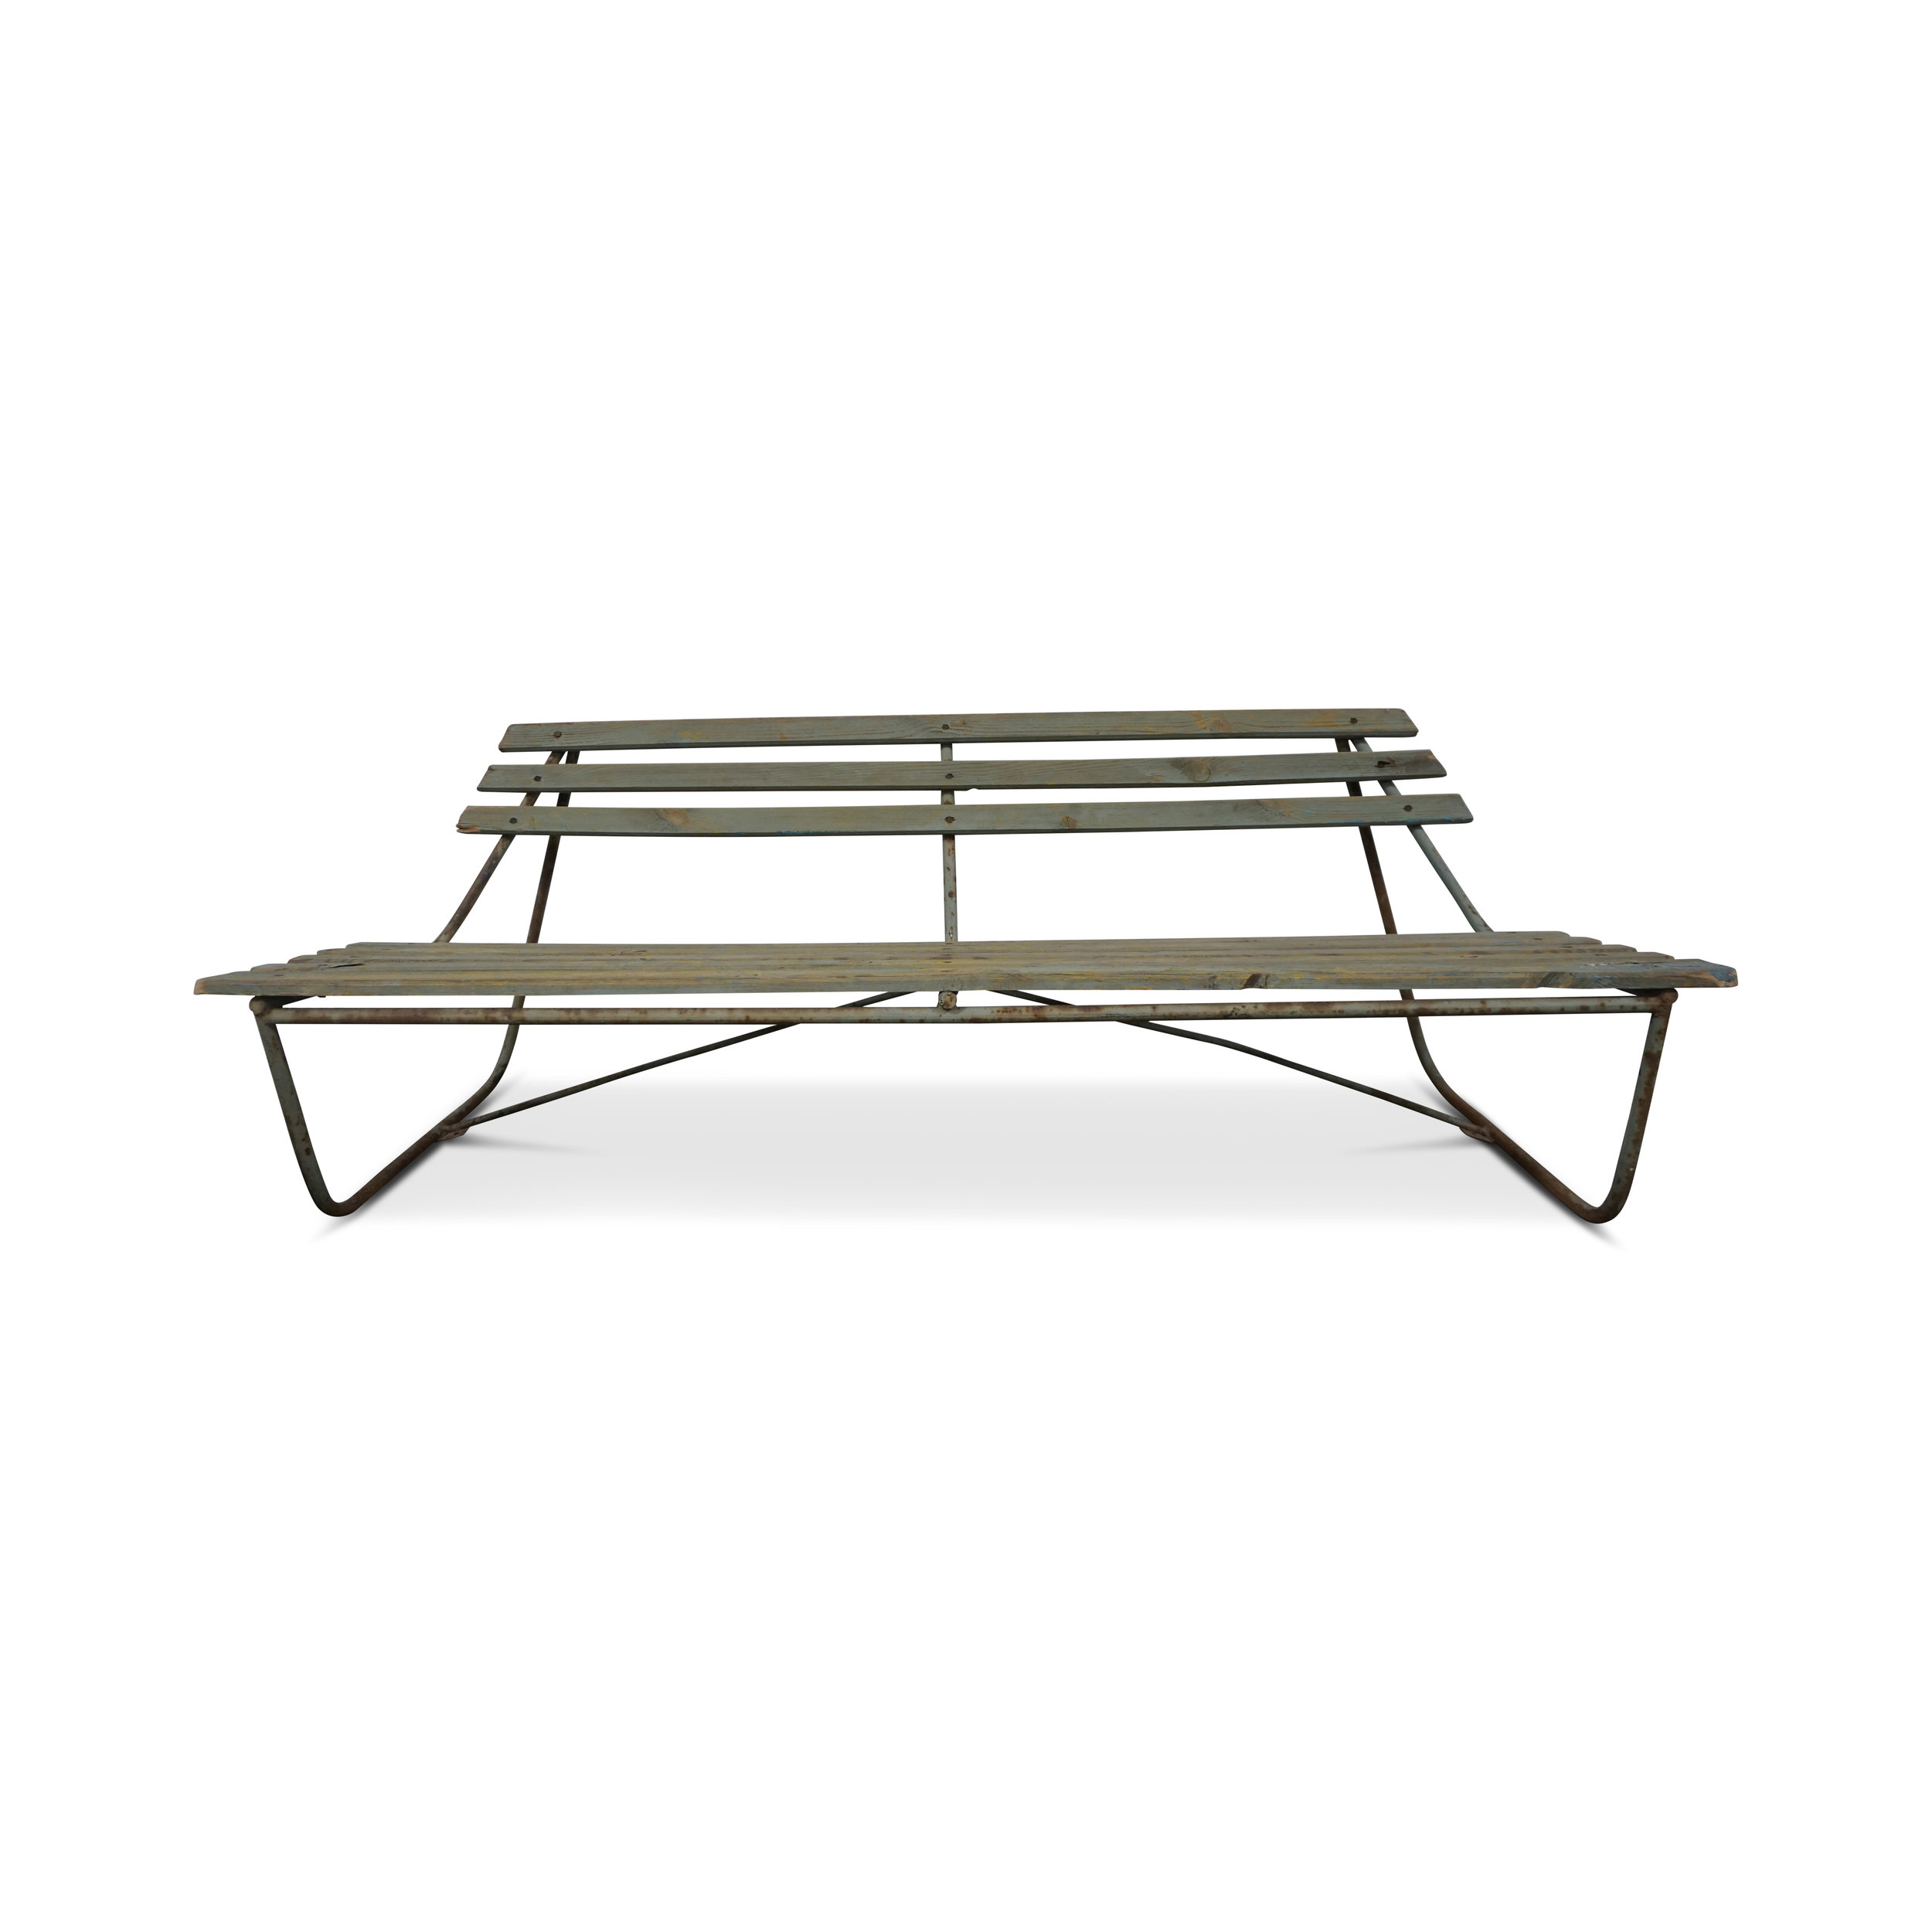 Vintage European Outdoor Bench